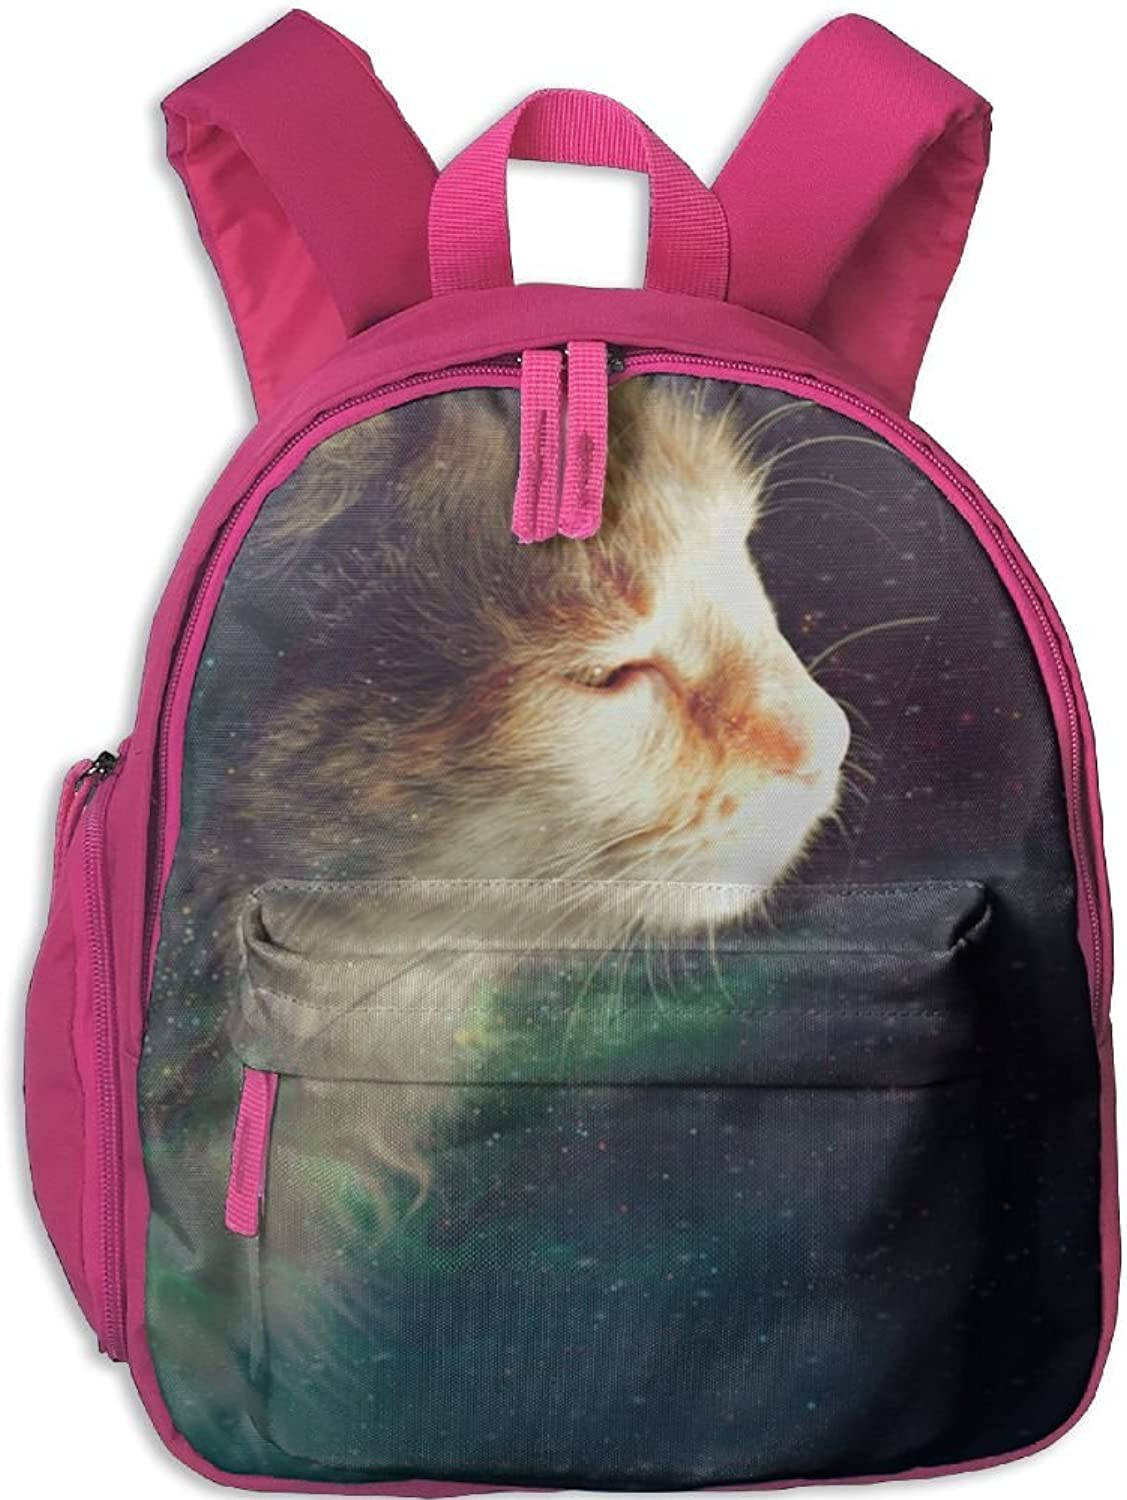 Pinta Star Cat Cub Cool School Book Bag Backpacks for Girl's Boy's